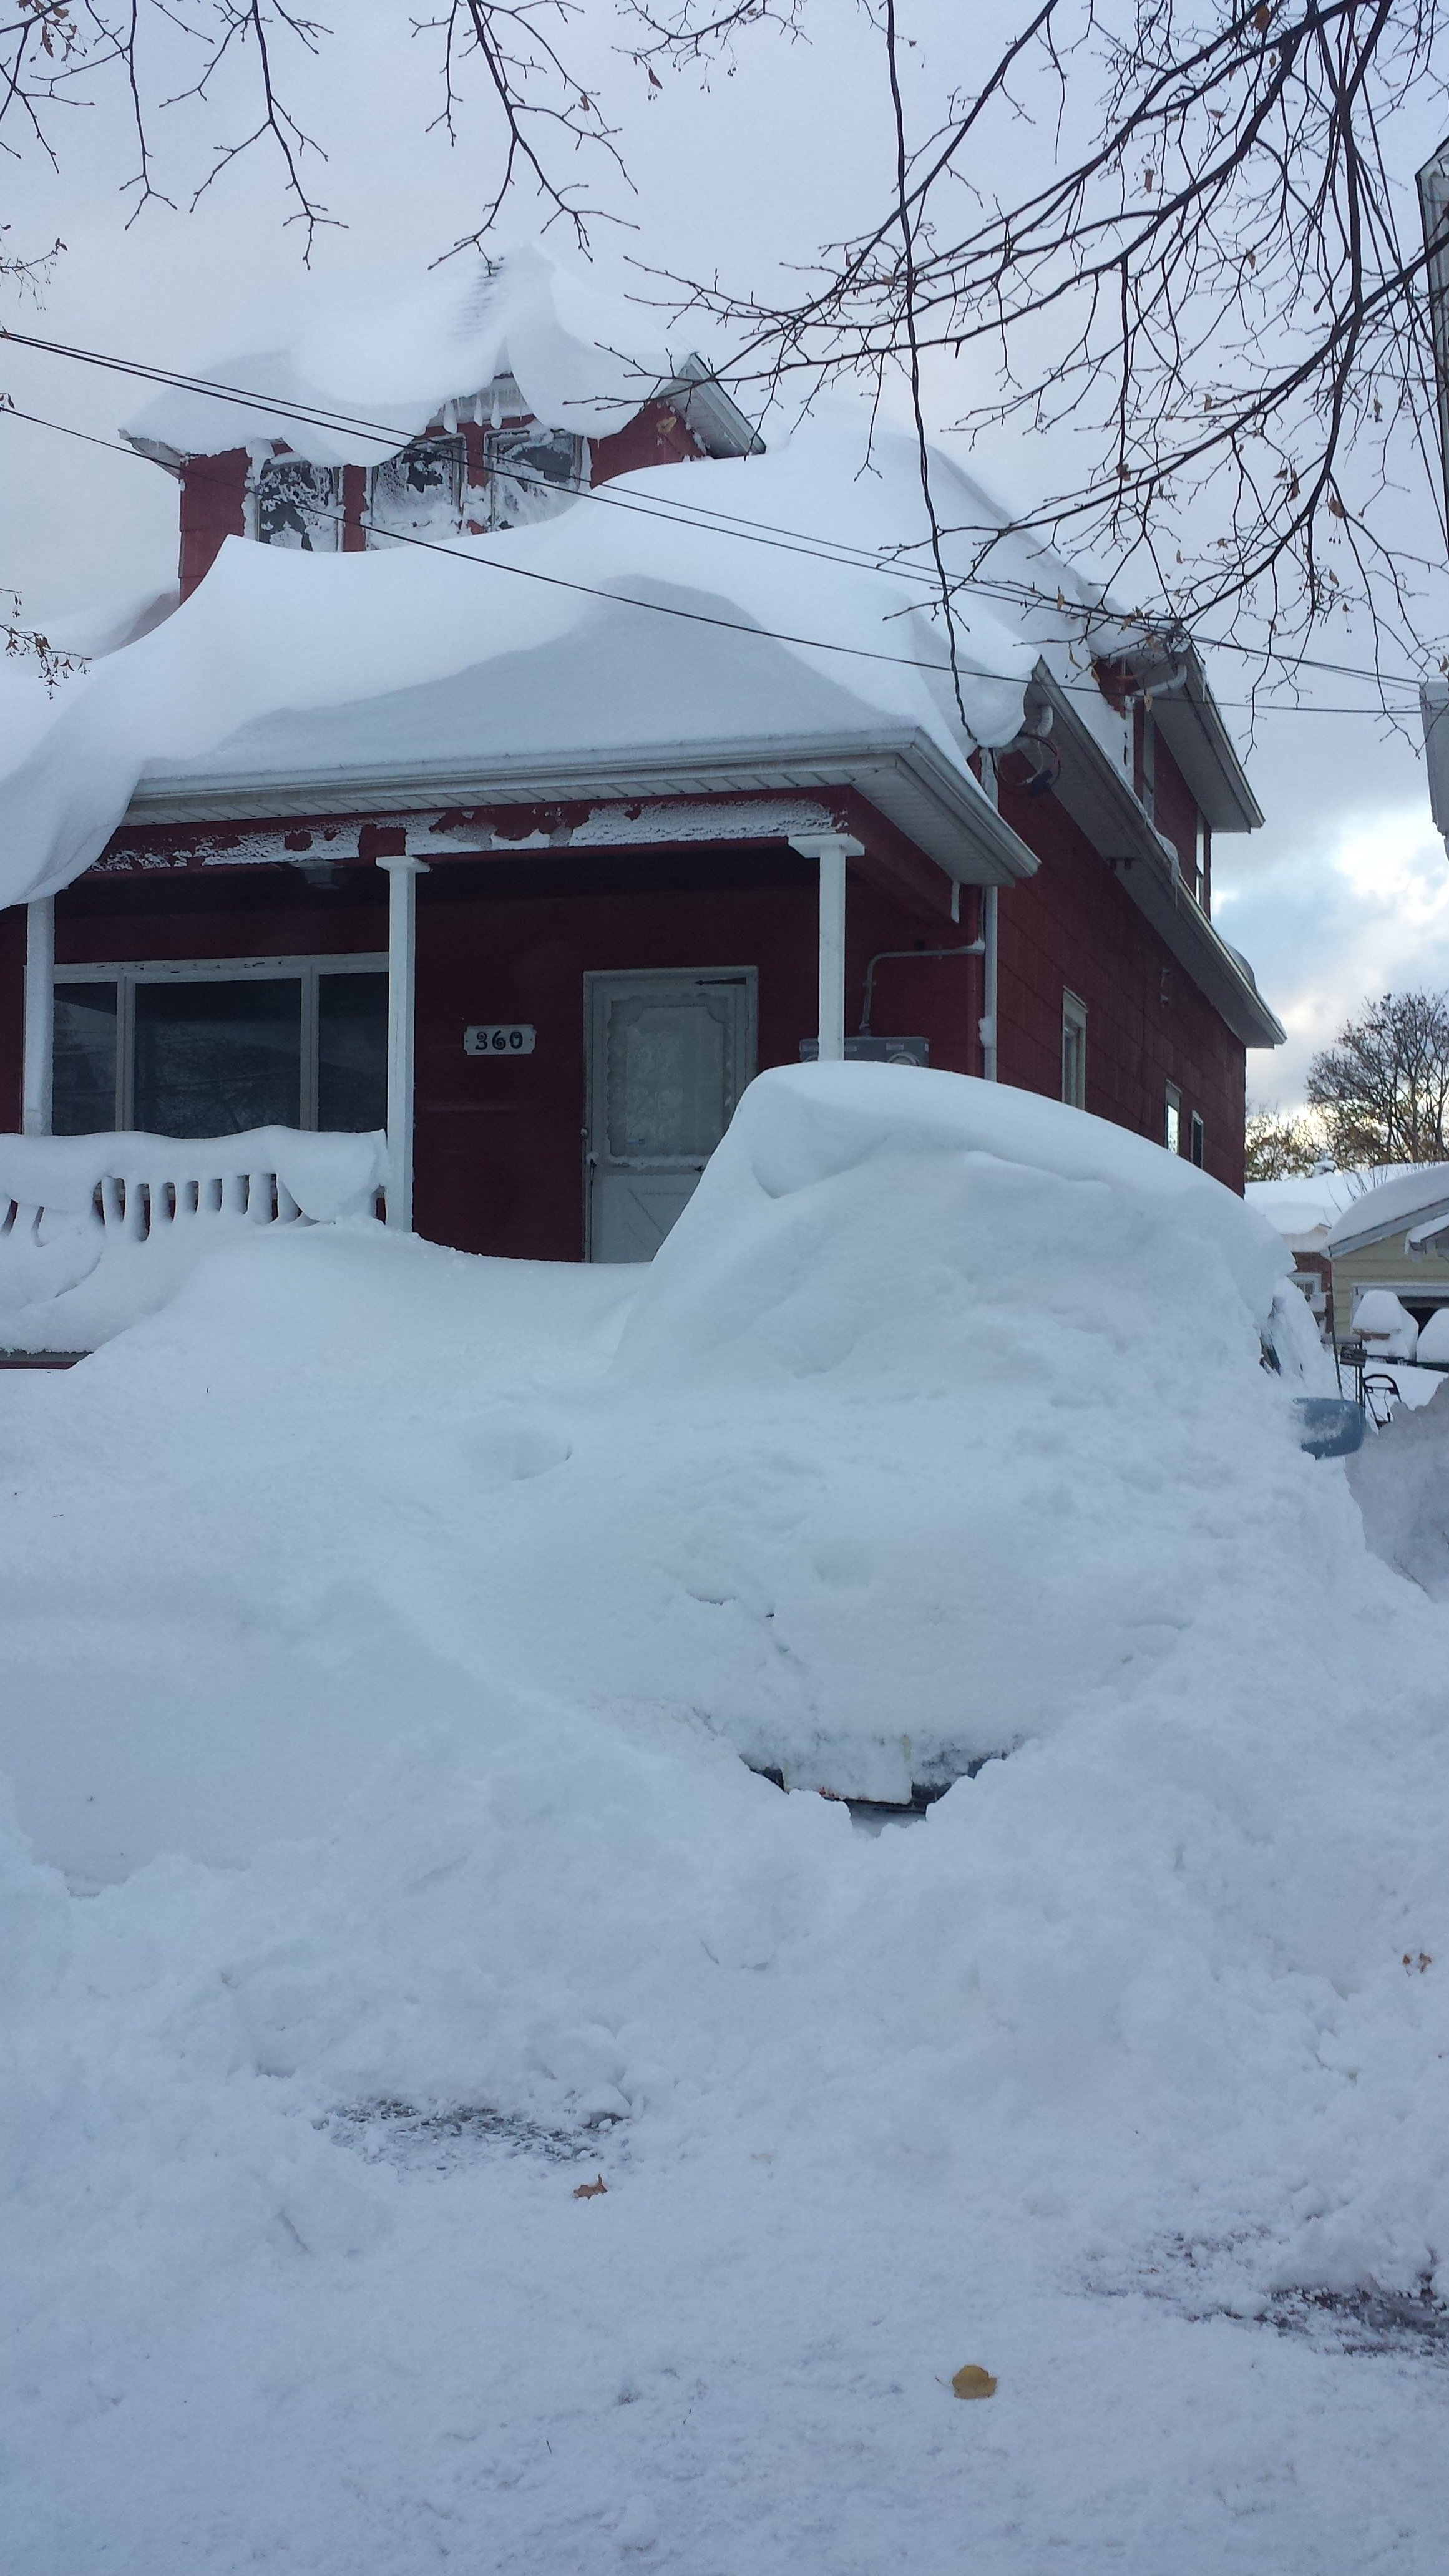 Buffalo, New York buried in 6 feet of snow.